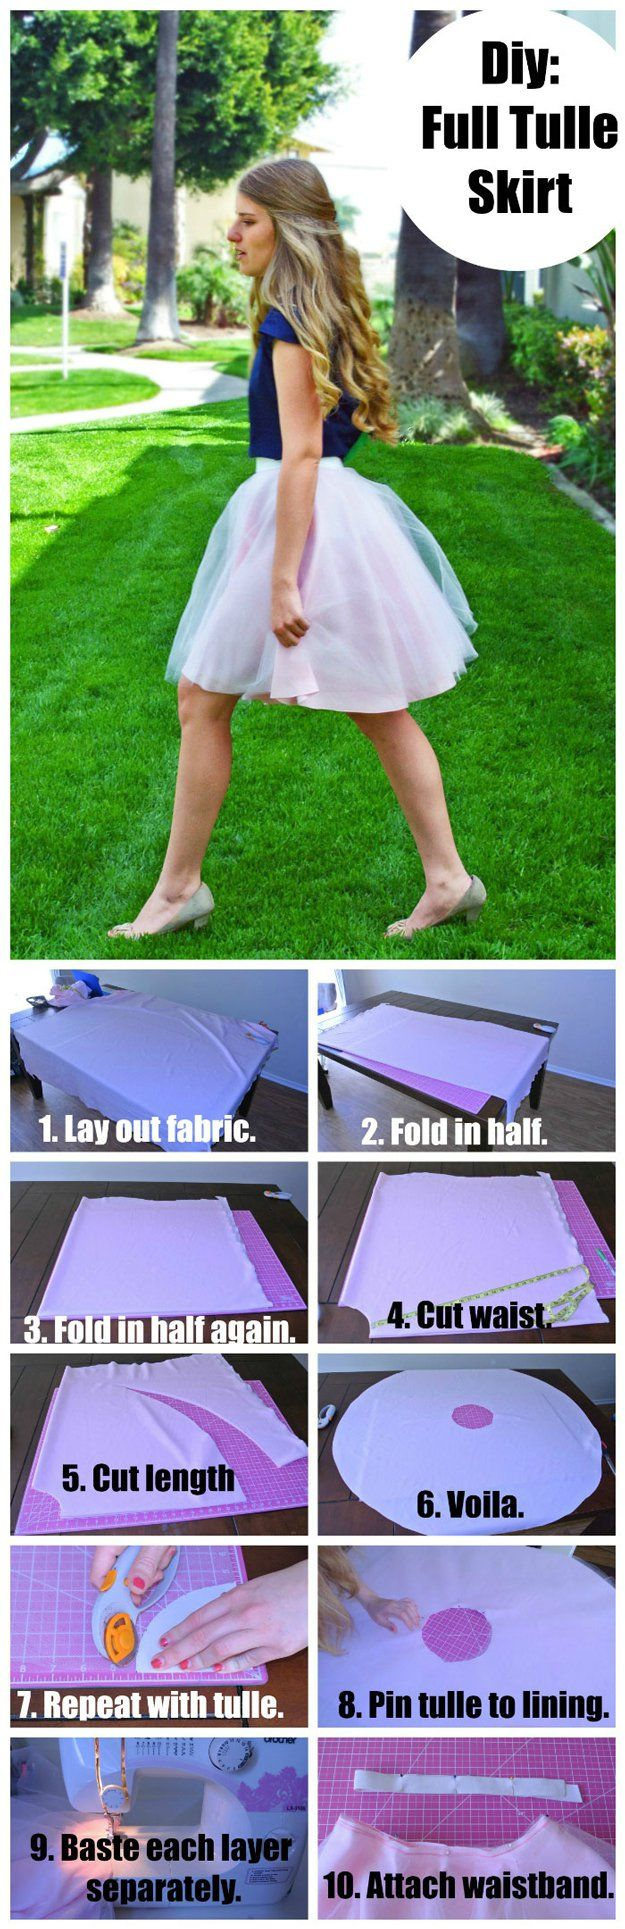 Easy and Simple Step by Step DIY Skirt Project for Women by DIY Ready at http://diyready.com/diy-clothes-pants-skirts-for-women/